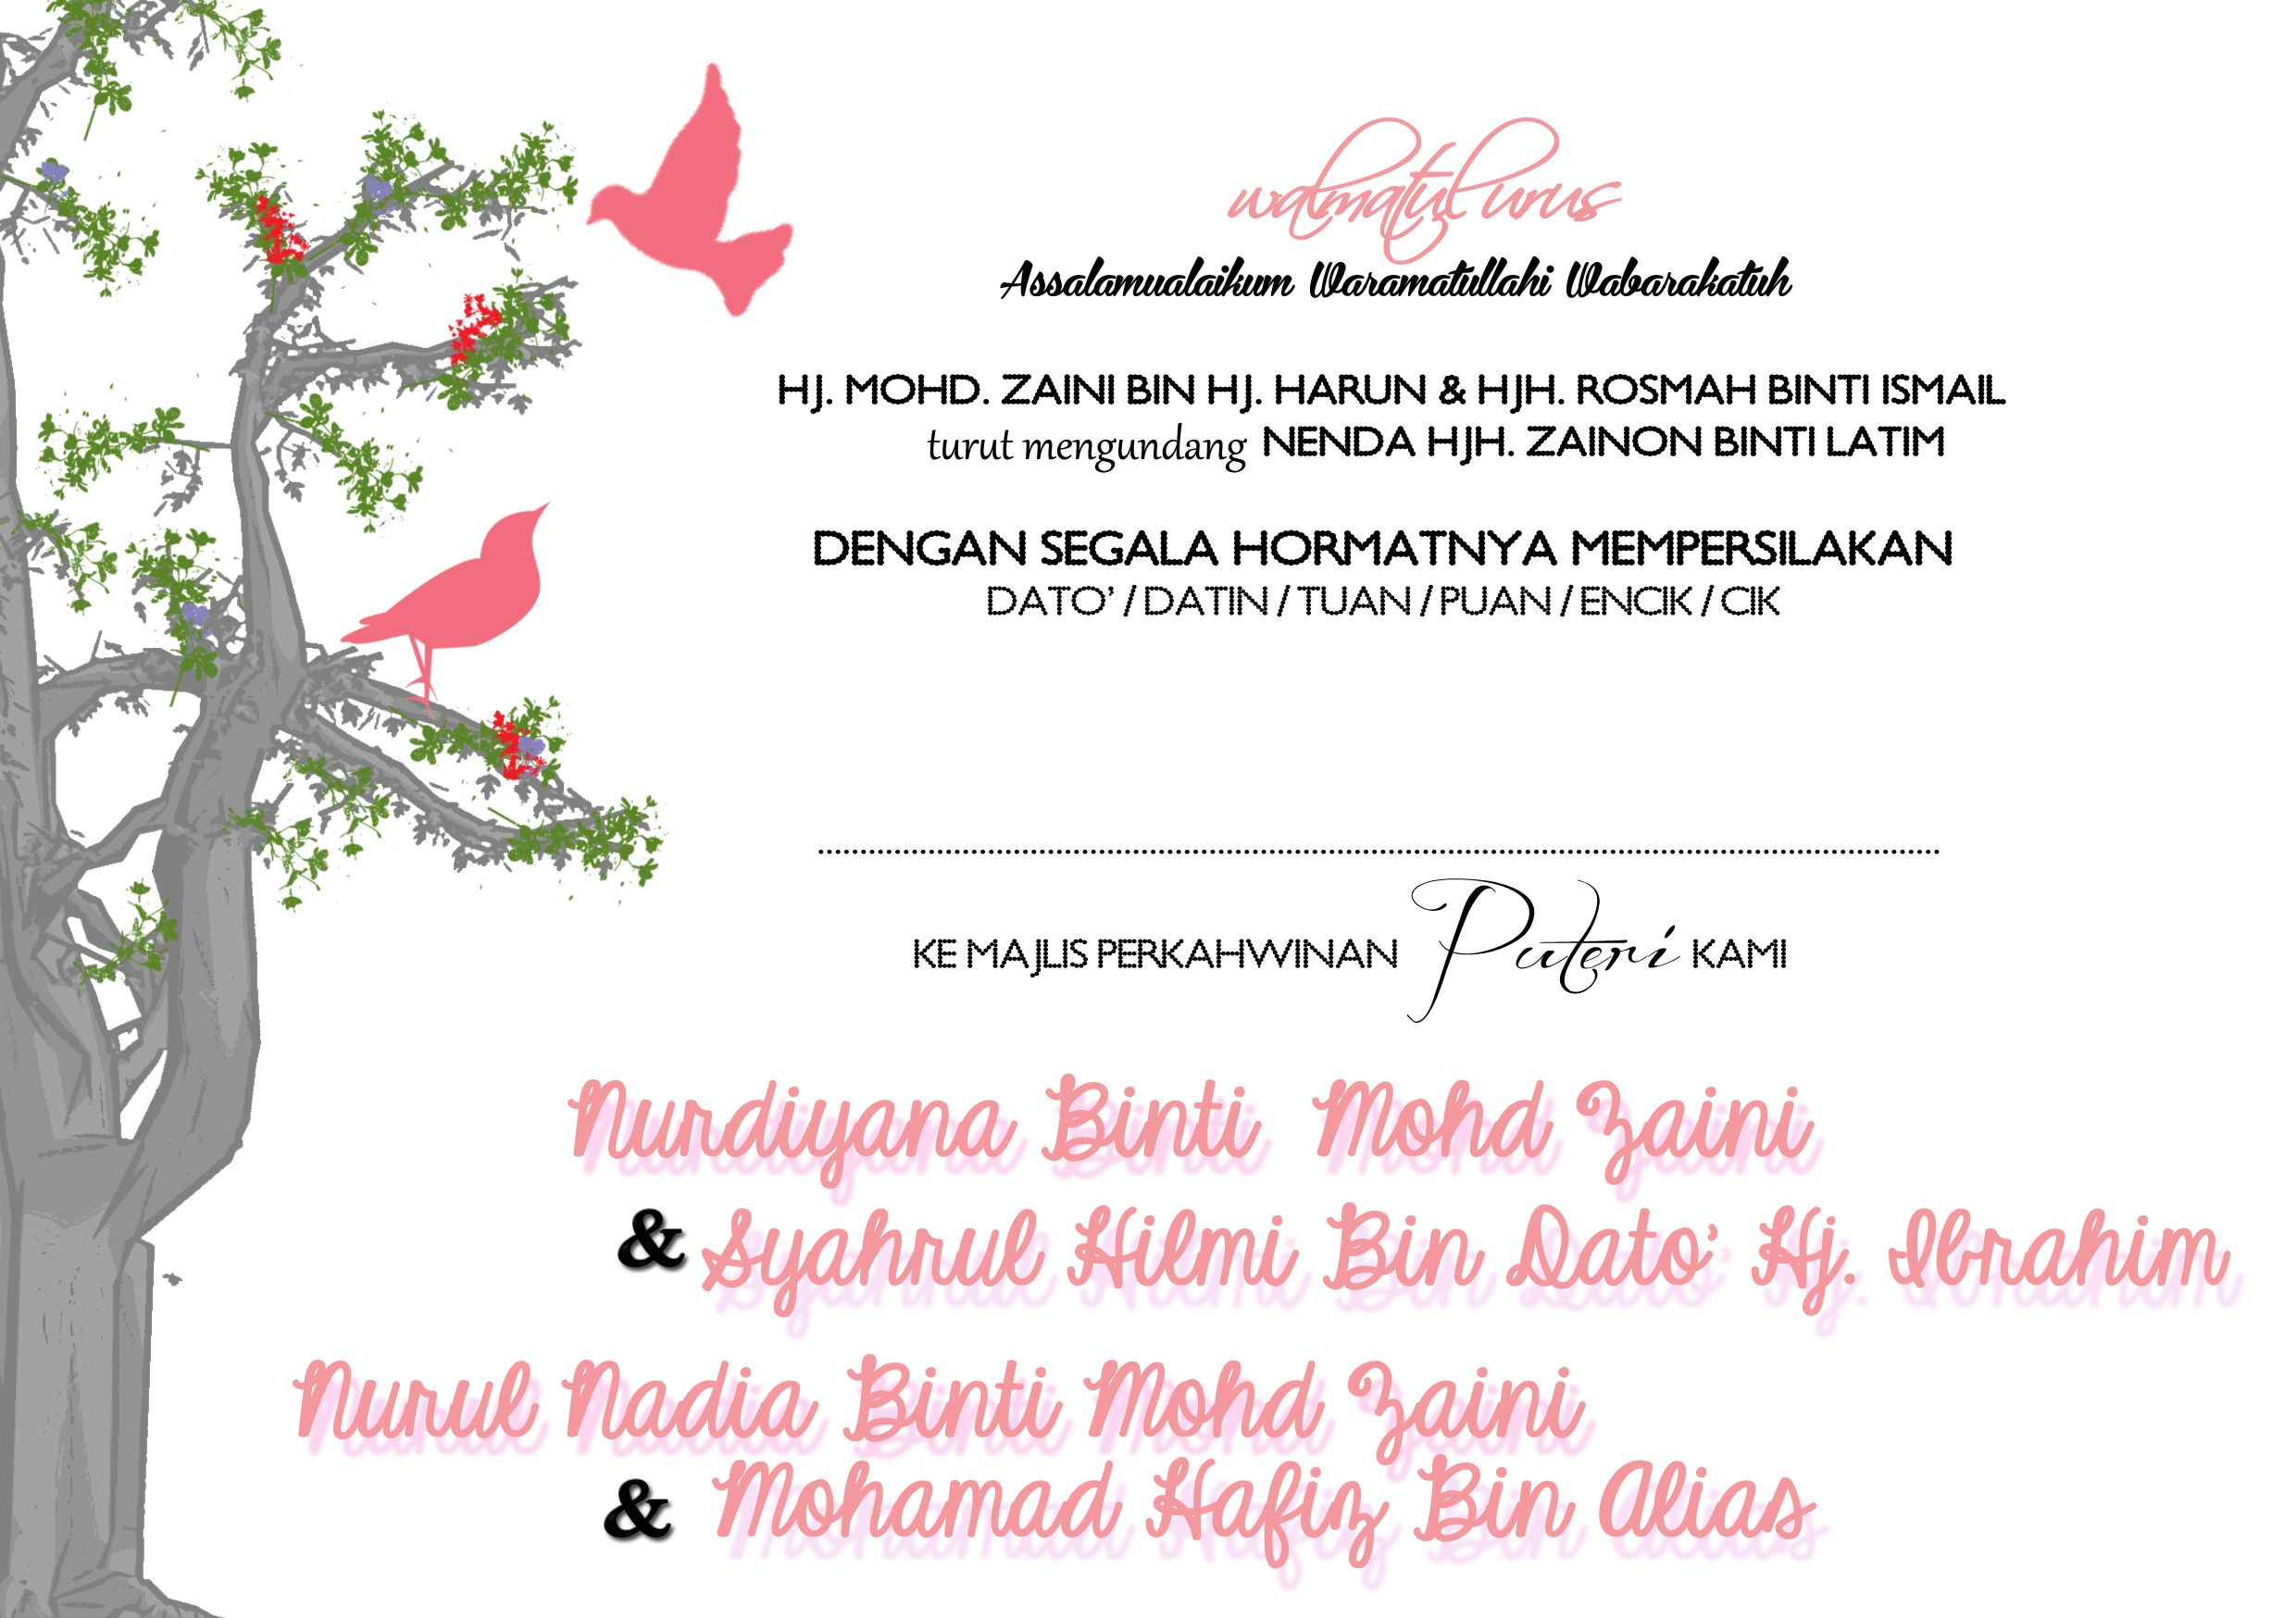 Wedding Card Design for Malay Wedding (Page 2) #nadiasuchendesigns #weddingcard #malaywedding For custom made invitation designs, contact nadiasuchen@gmail. ...